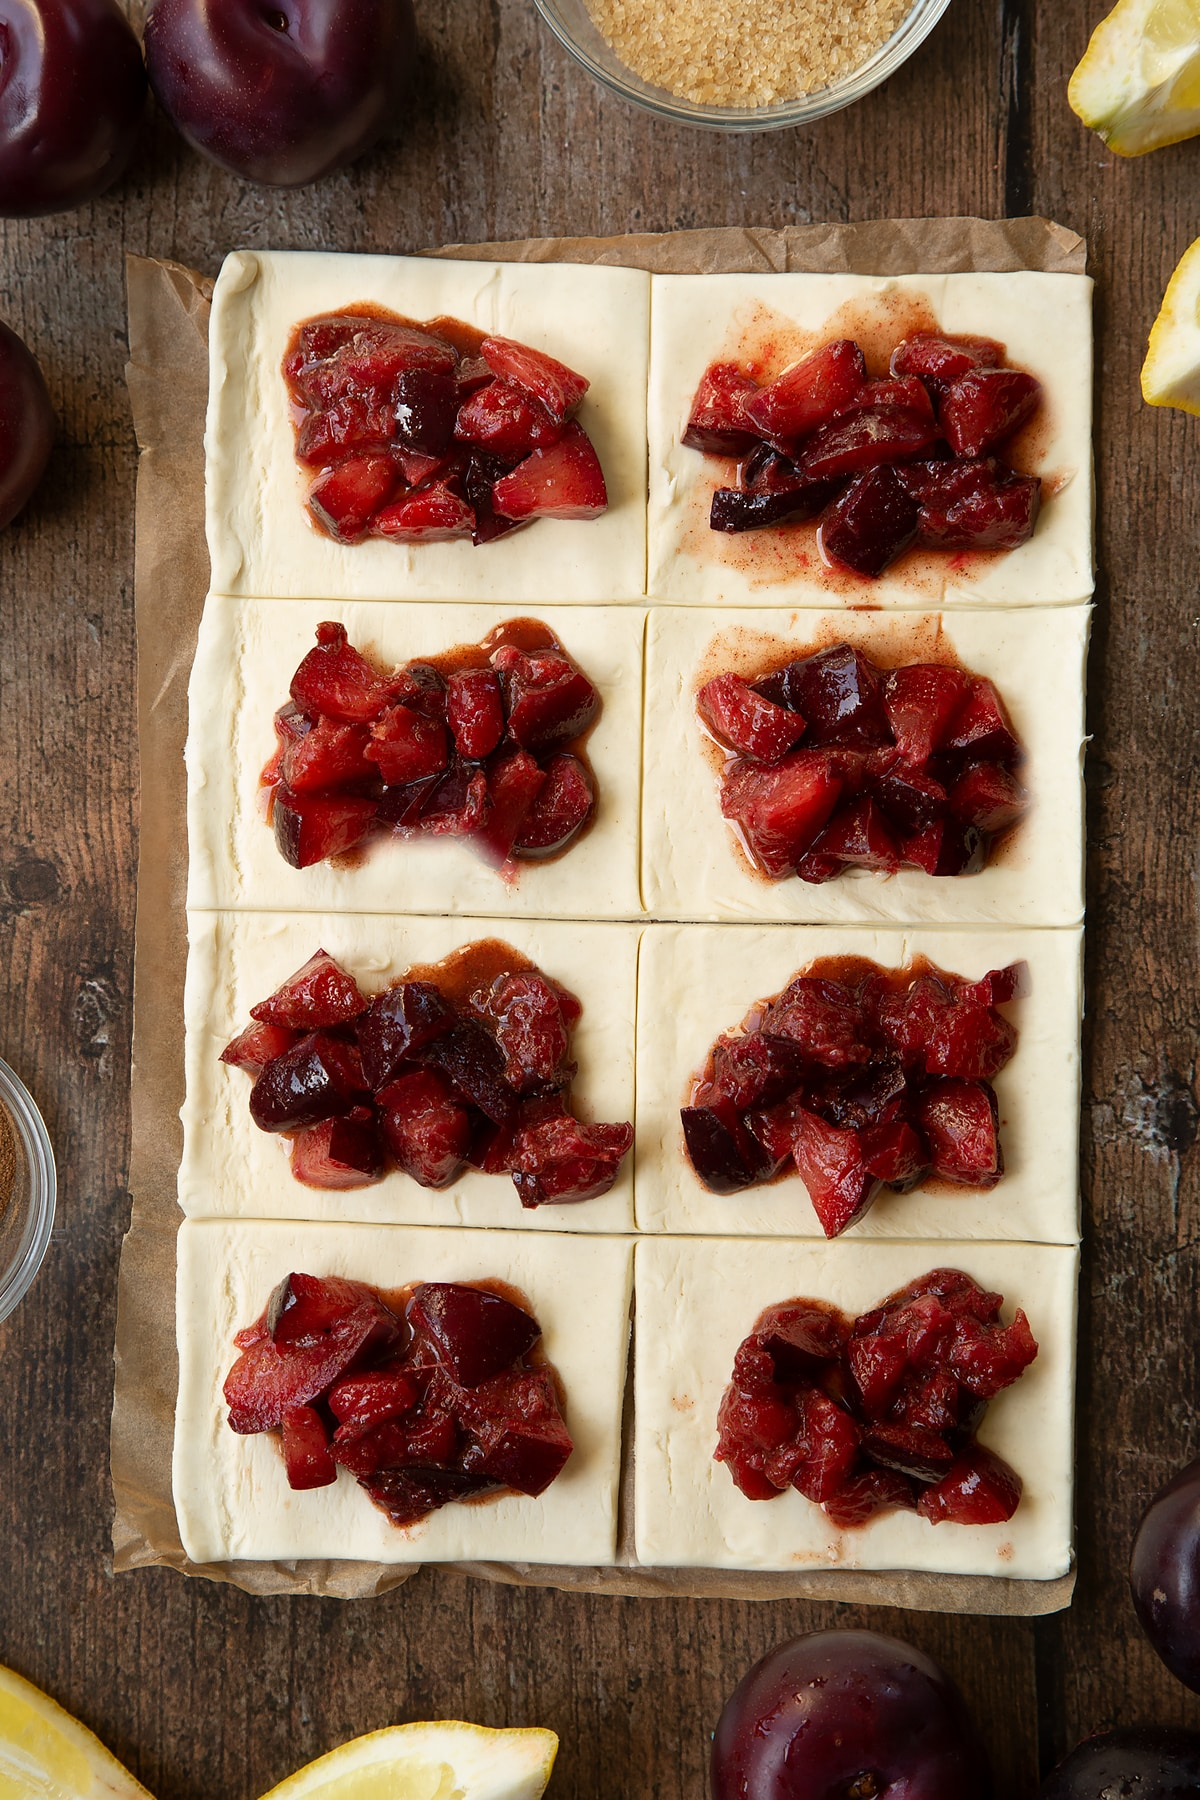 A puff pastry sheet cut into 8 pieces. Each piece is topped with chopped plums. Ingredients to make a plum pastry recipe surround the pastry.